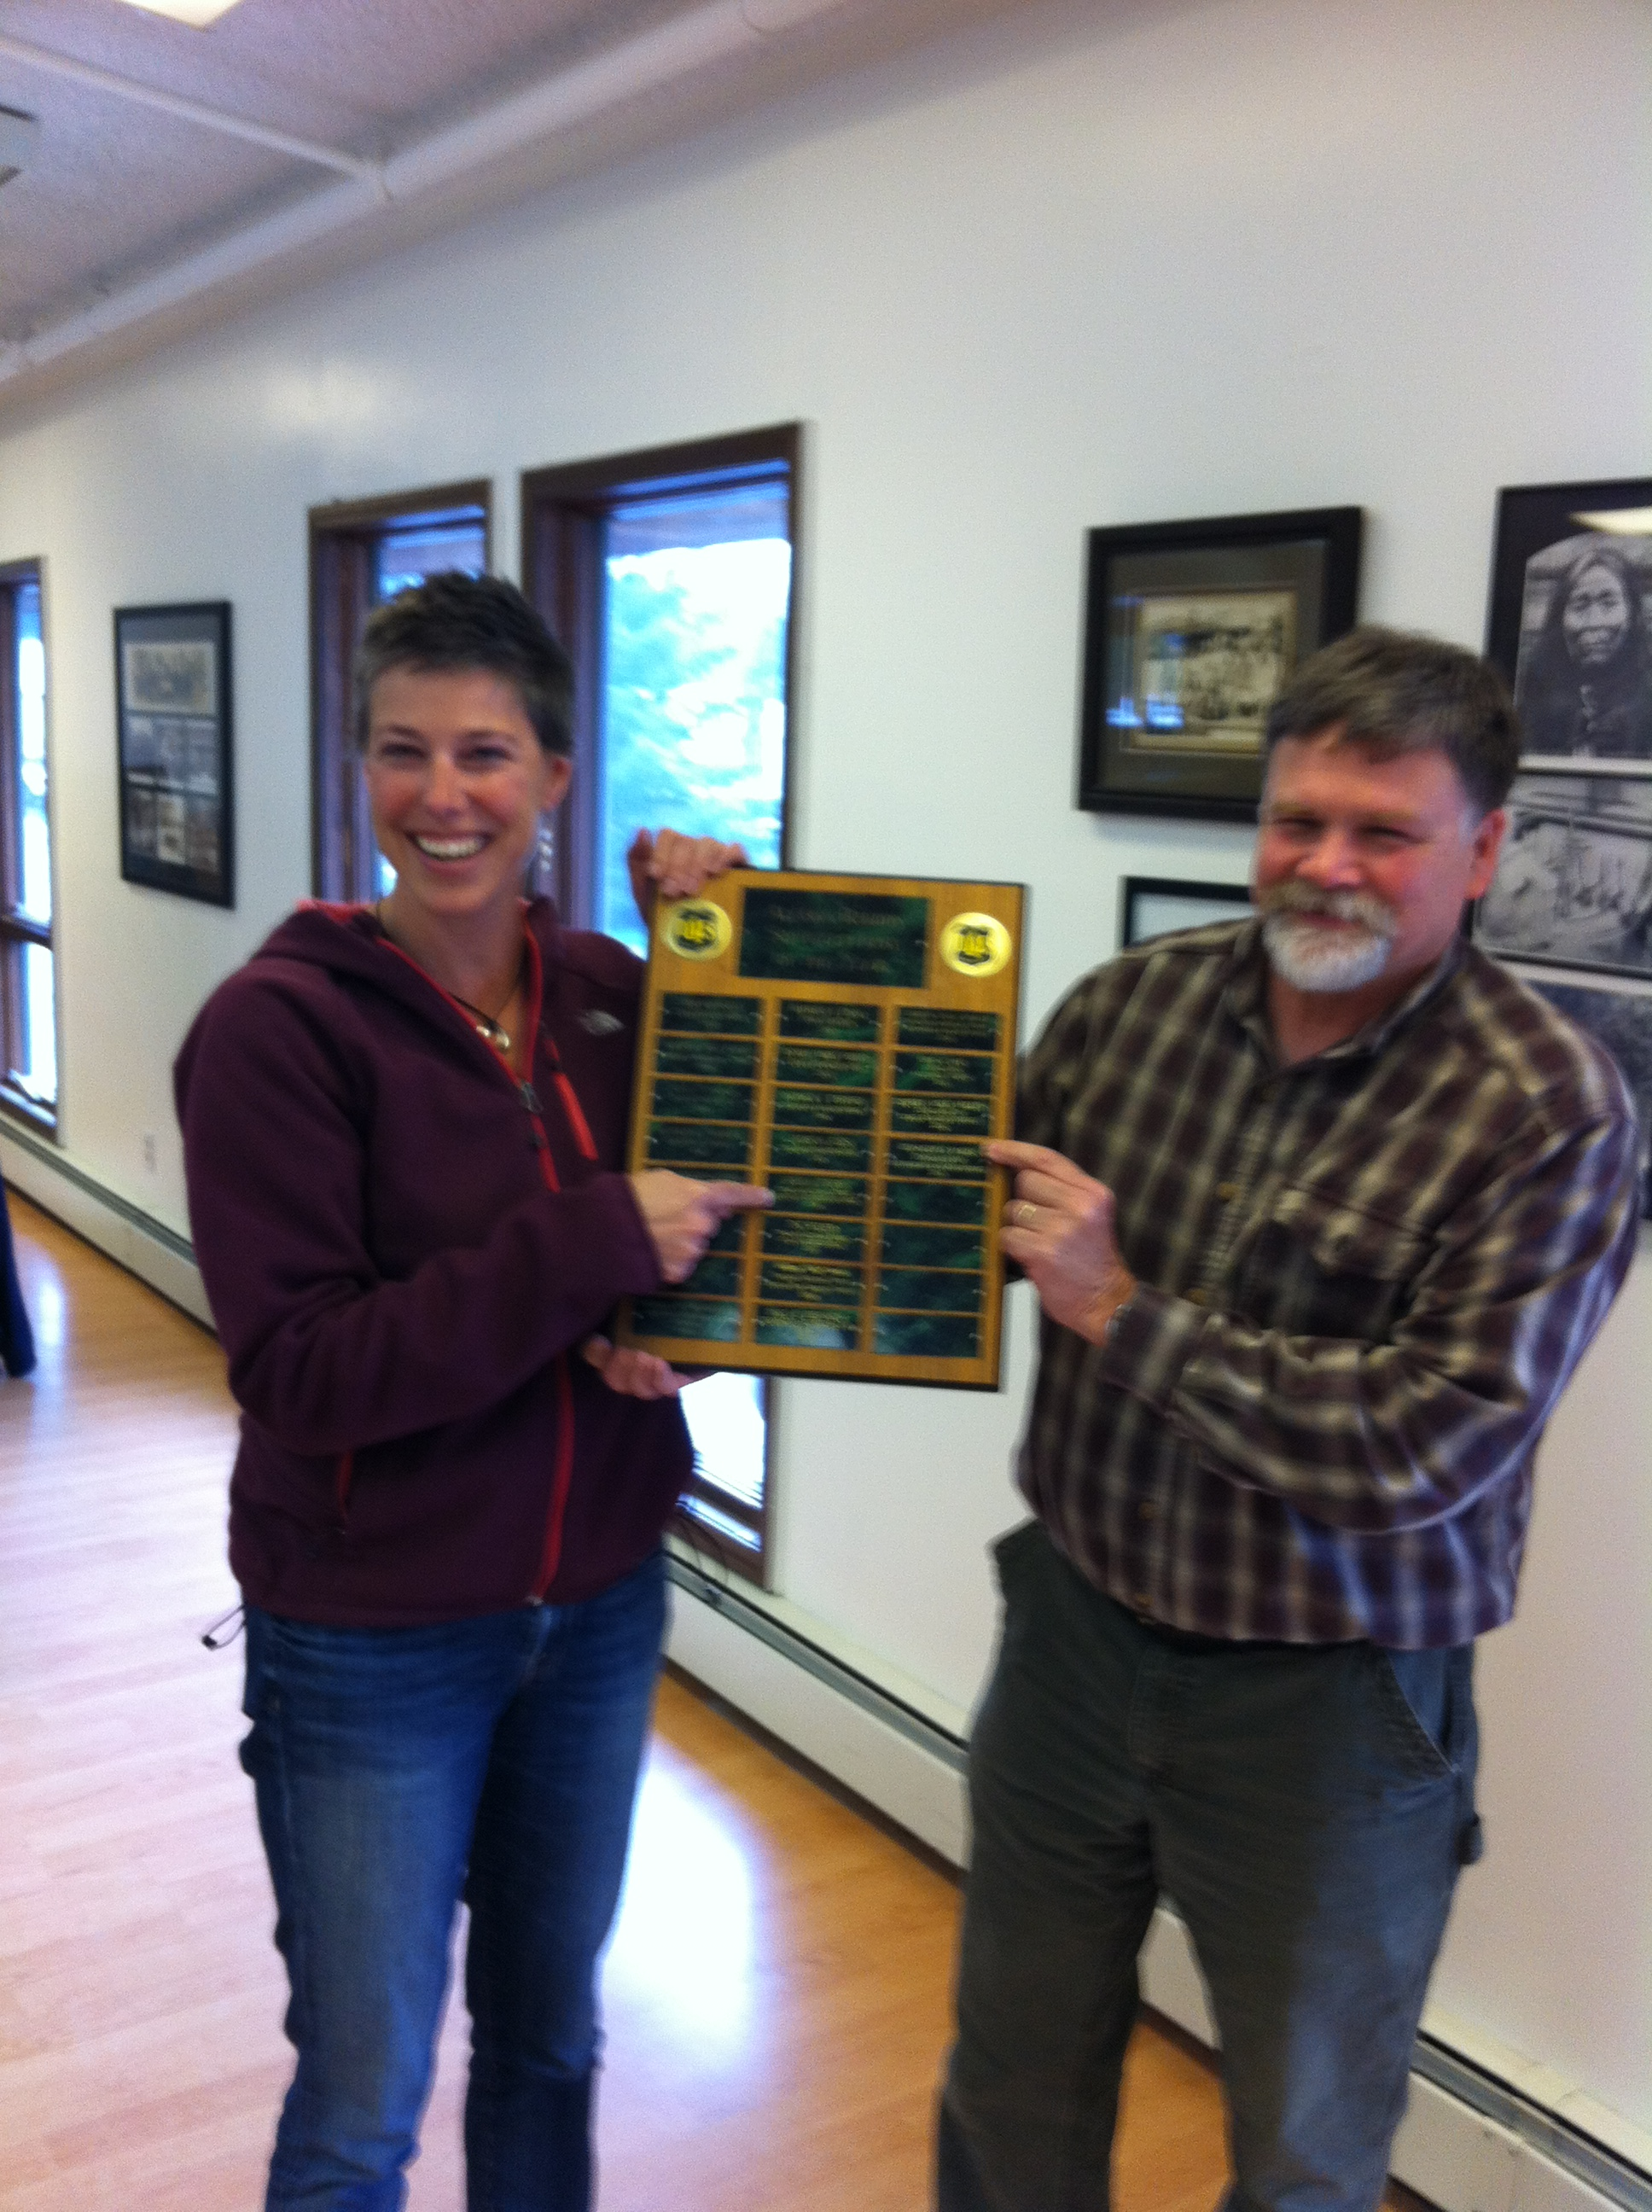 Forest service employee honored for silviculture work